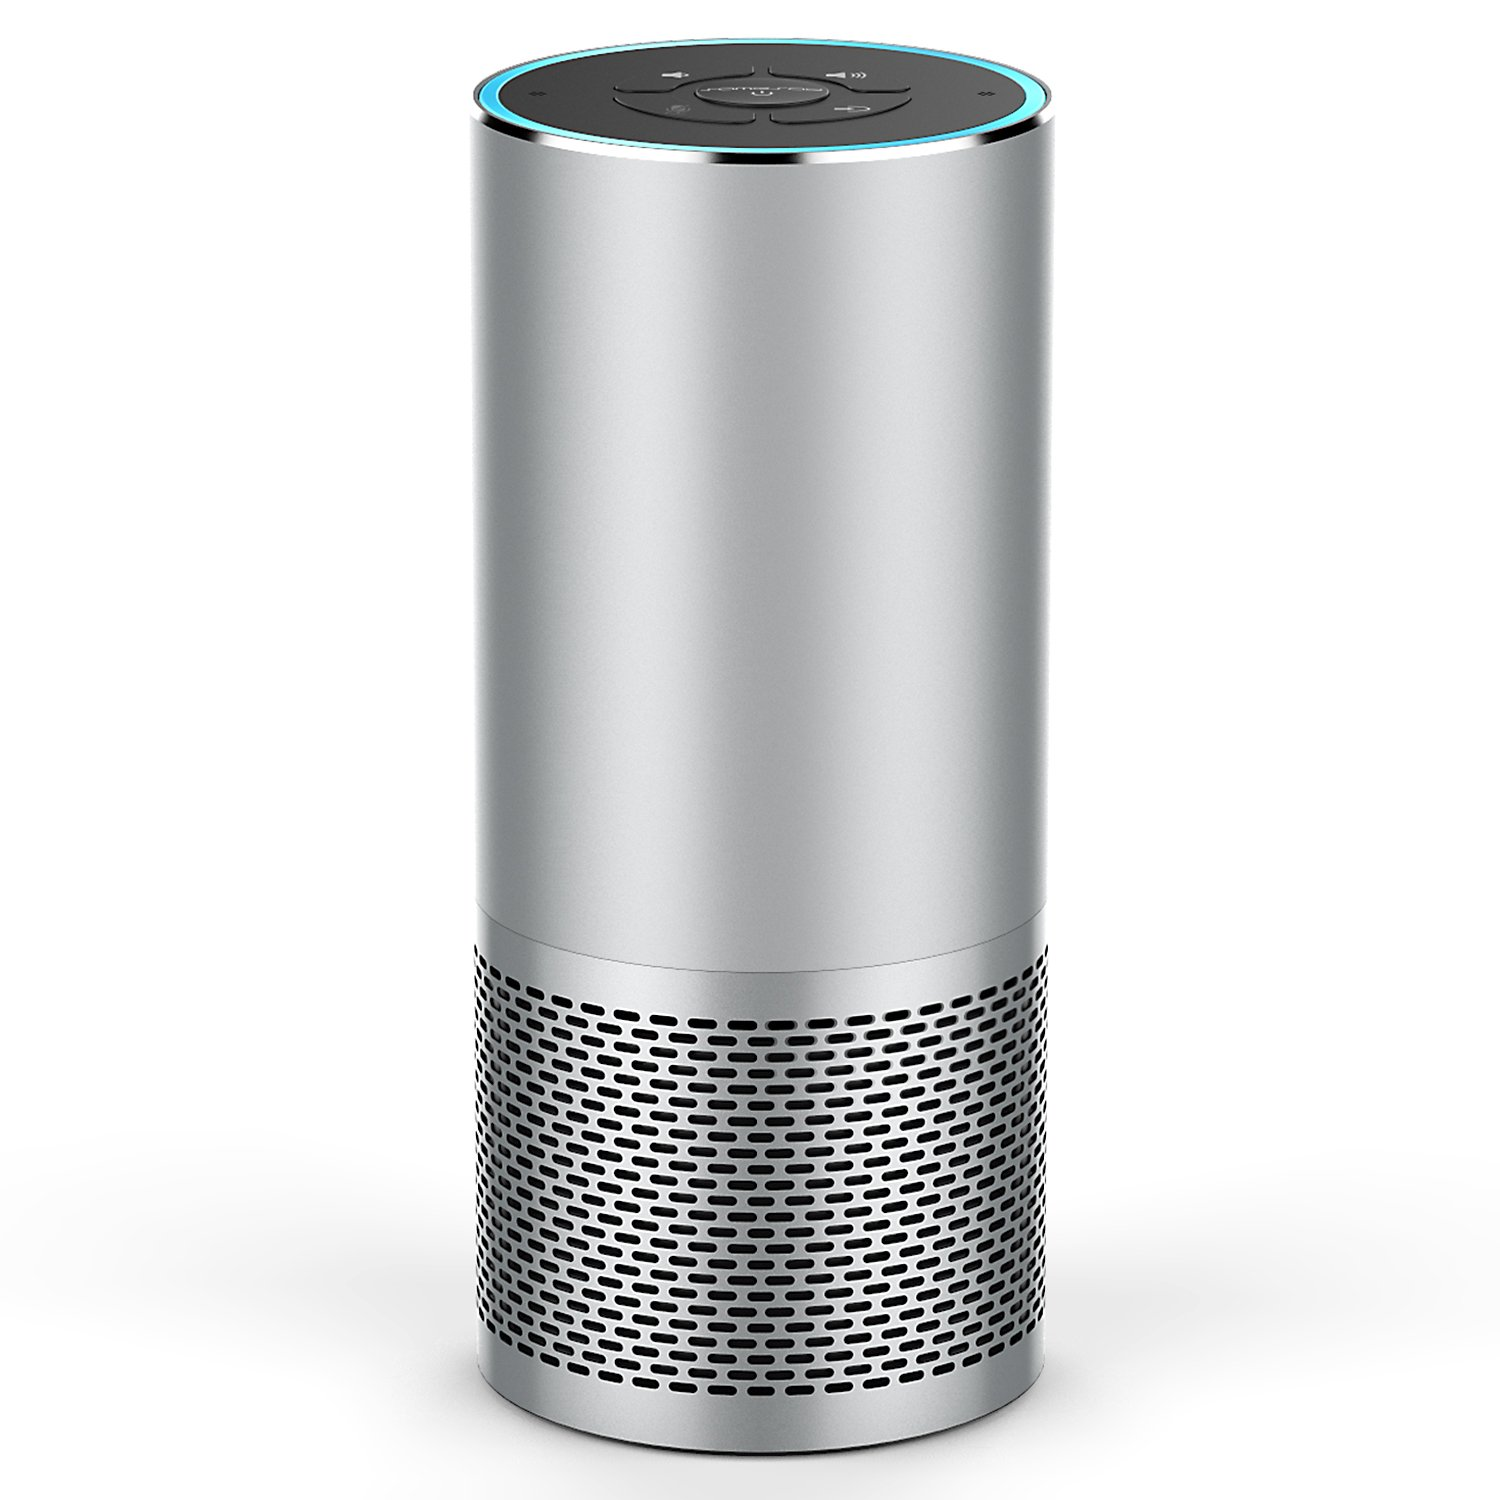 Smart Speaker Portable WiFi and Bluetooth Speaker with Alexa Voice Control - Silver